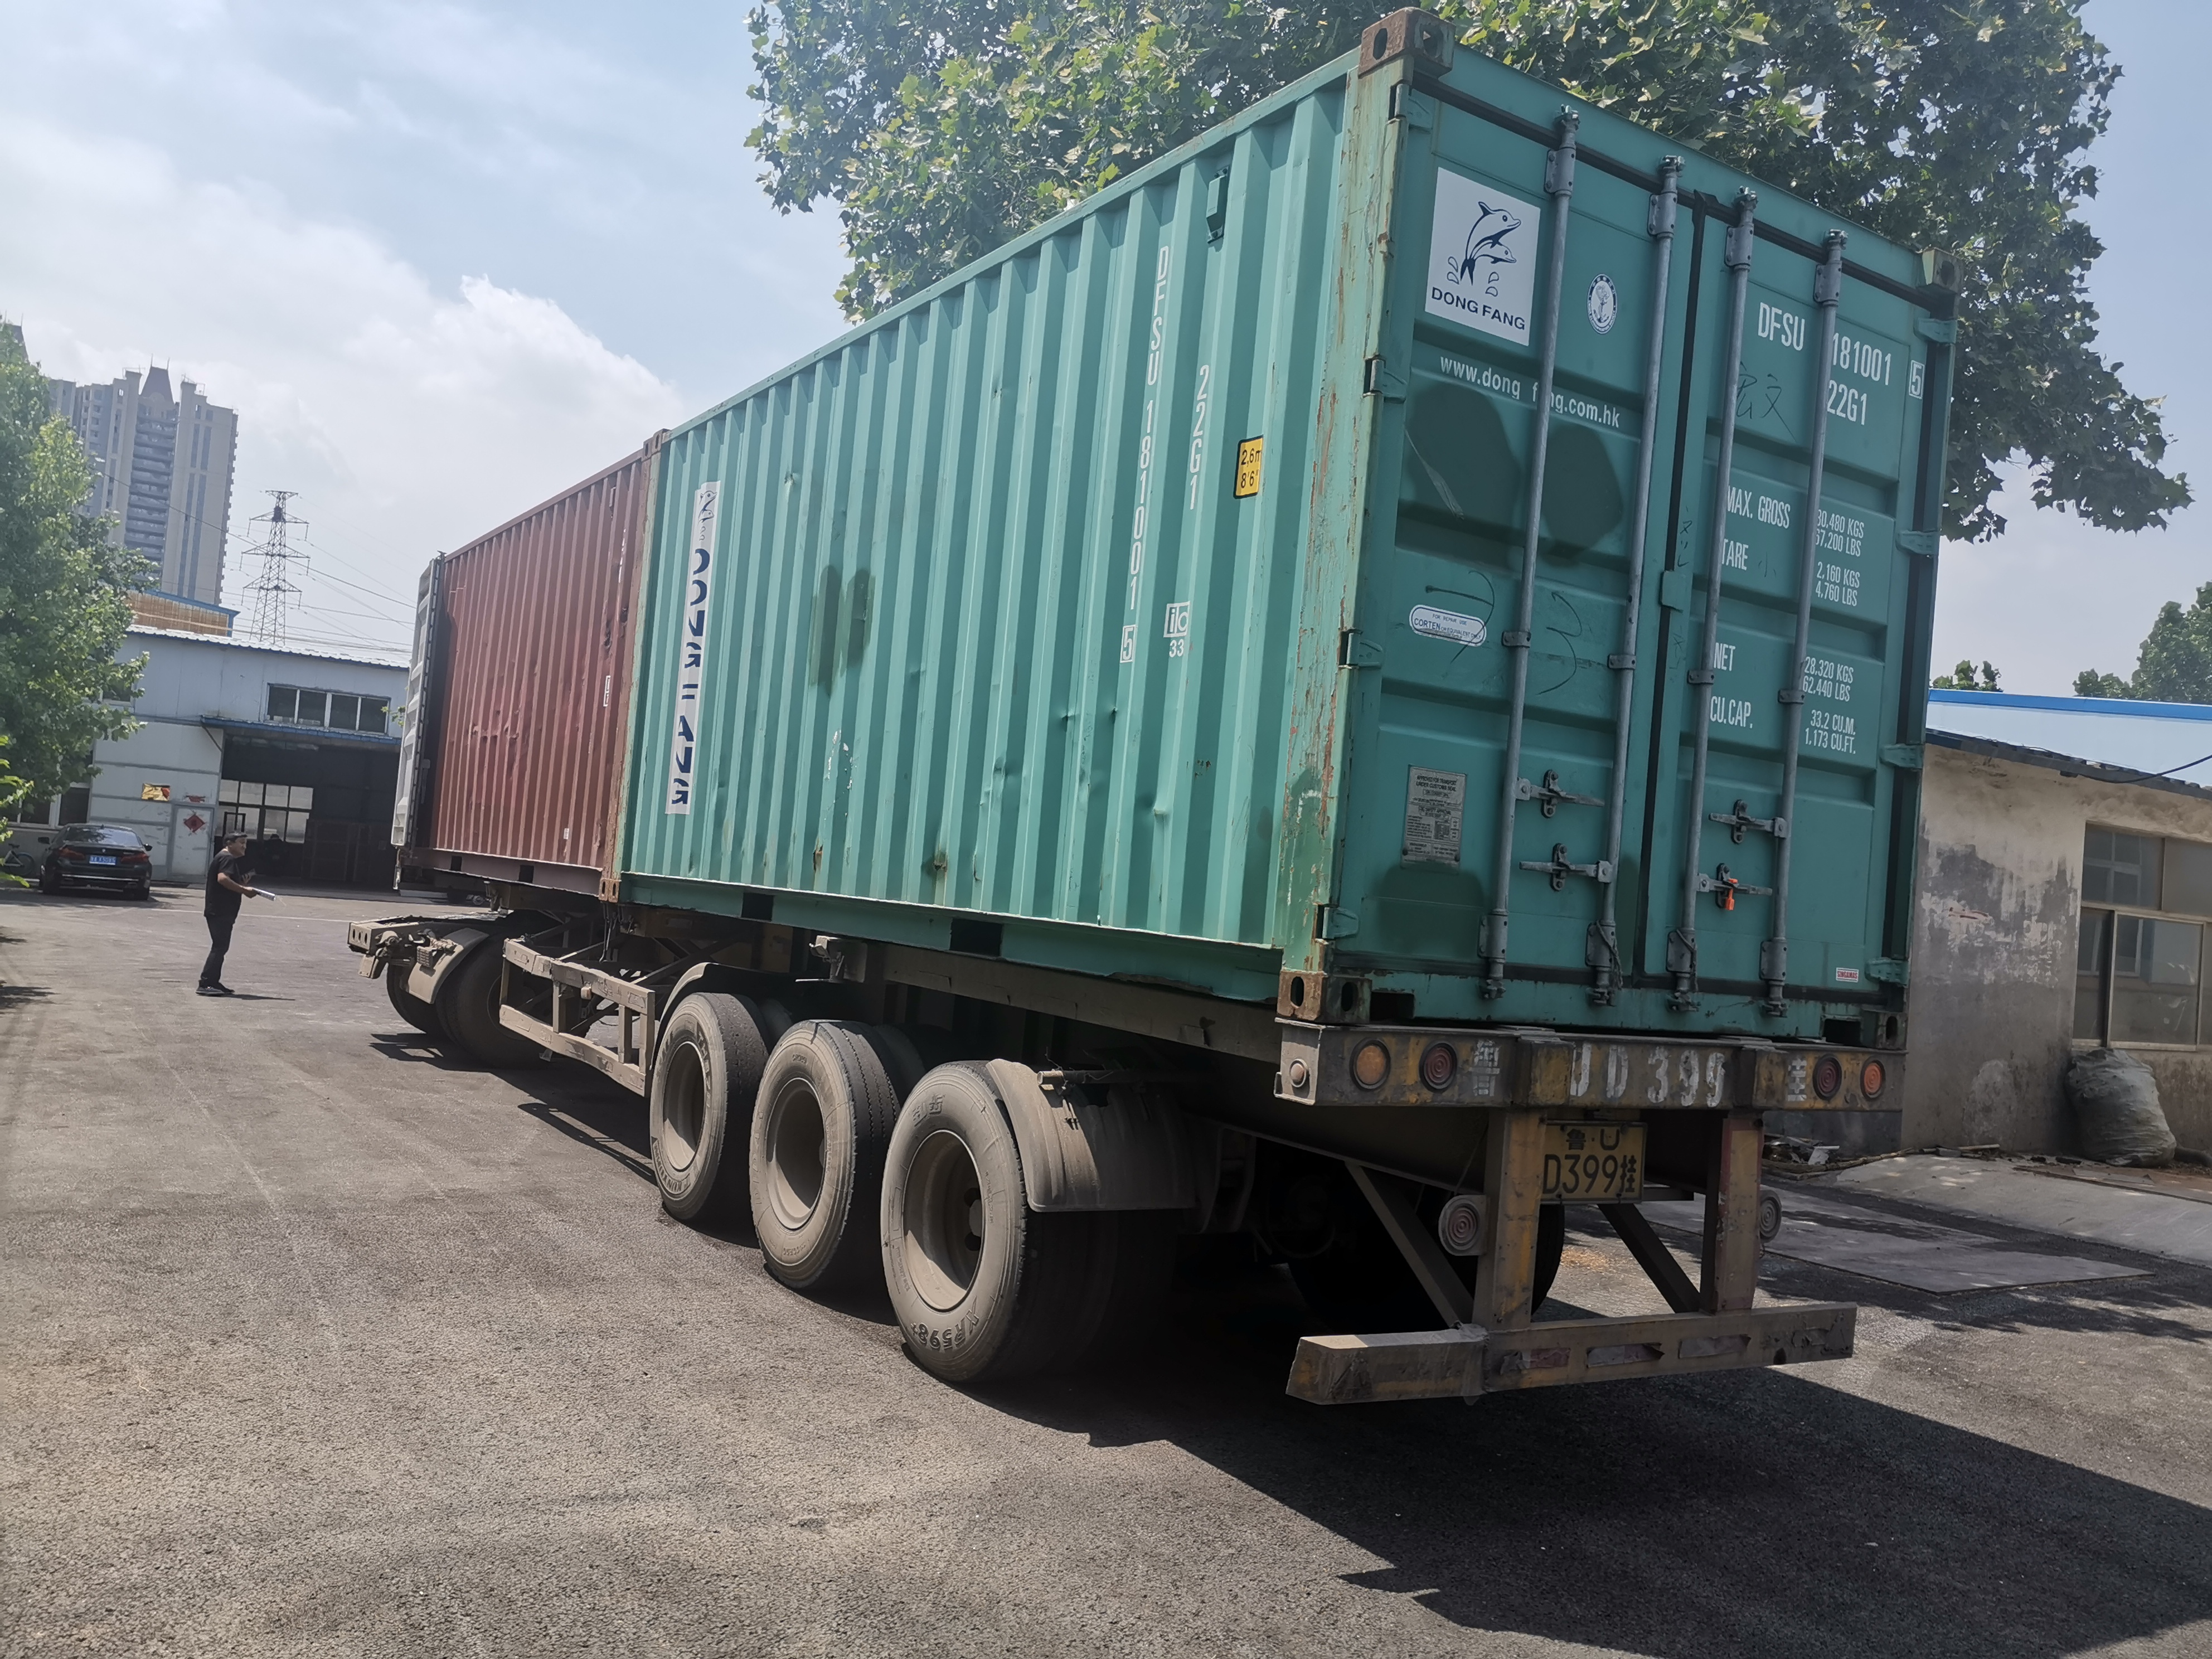 Shipped 2 containers to Russia on 2020.5.27